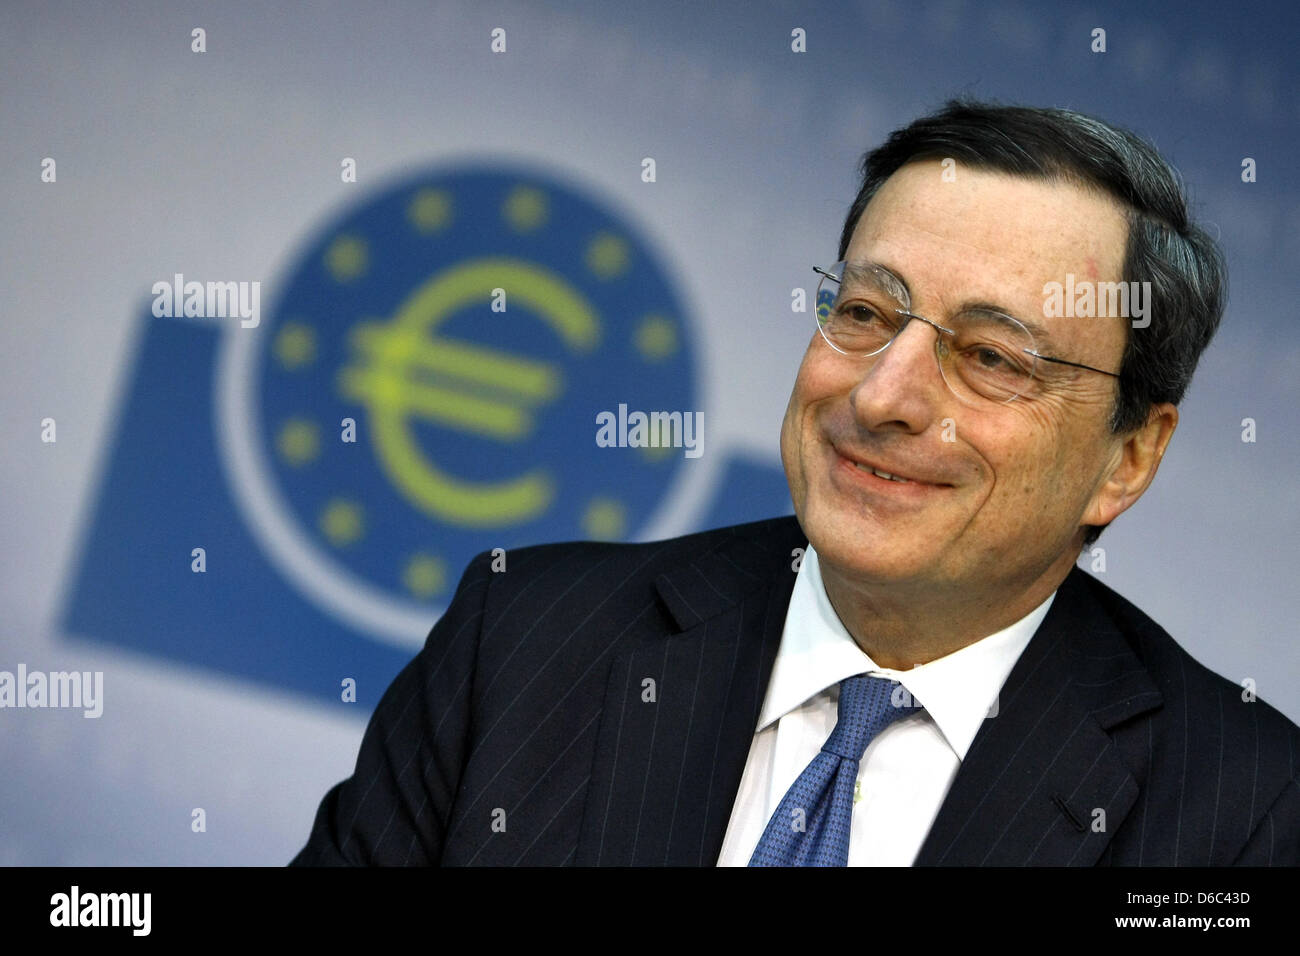 President of the European Central Bank (ECB) Mario Draghi is pictured during a press conference at the ECB's - Stock Image